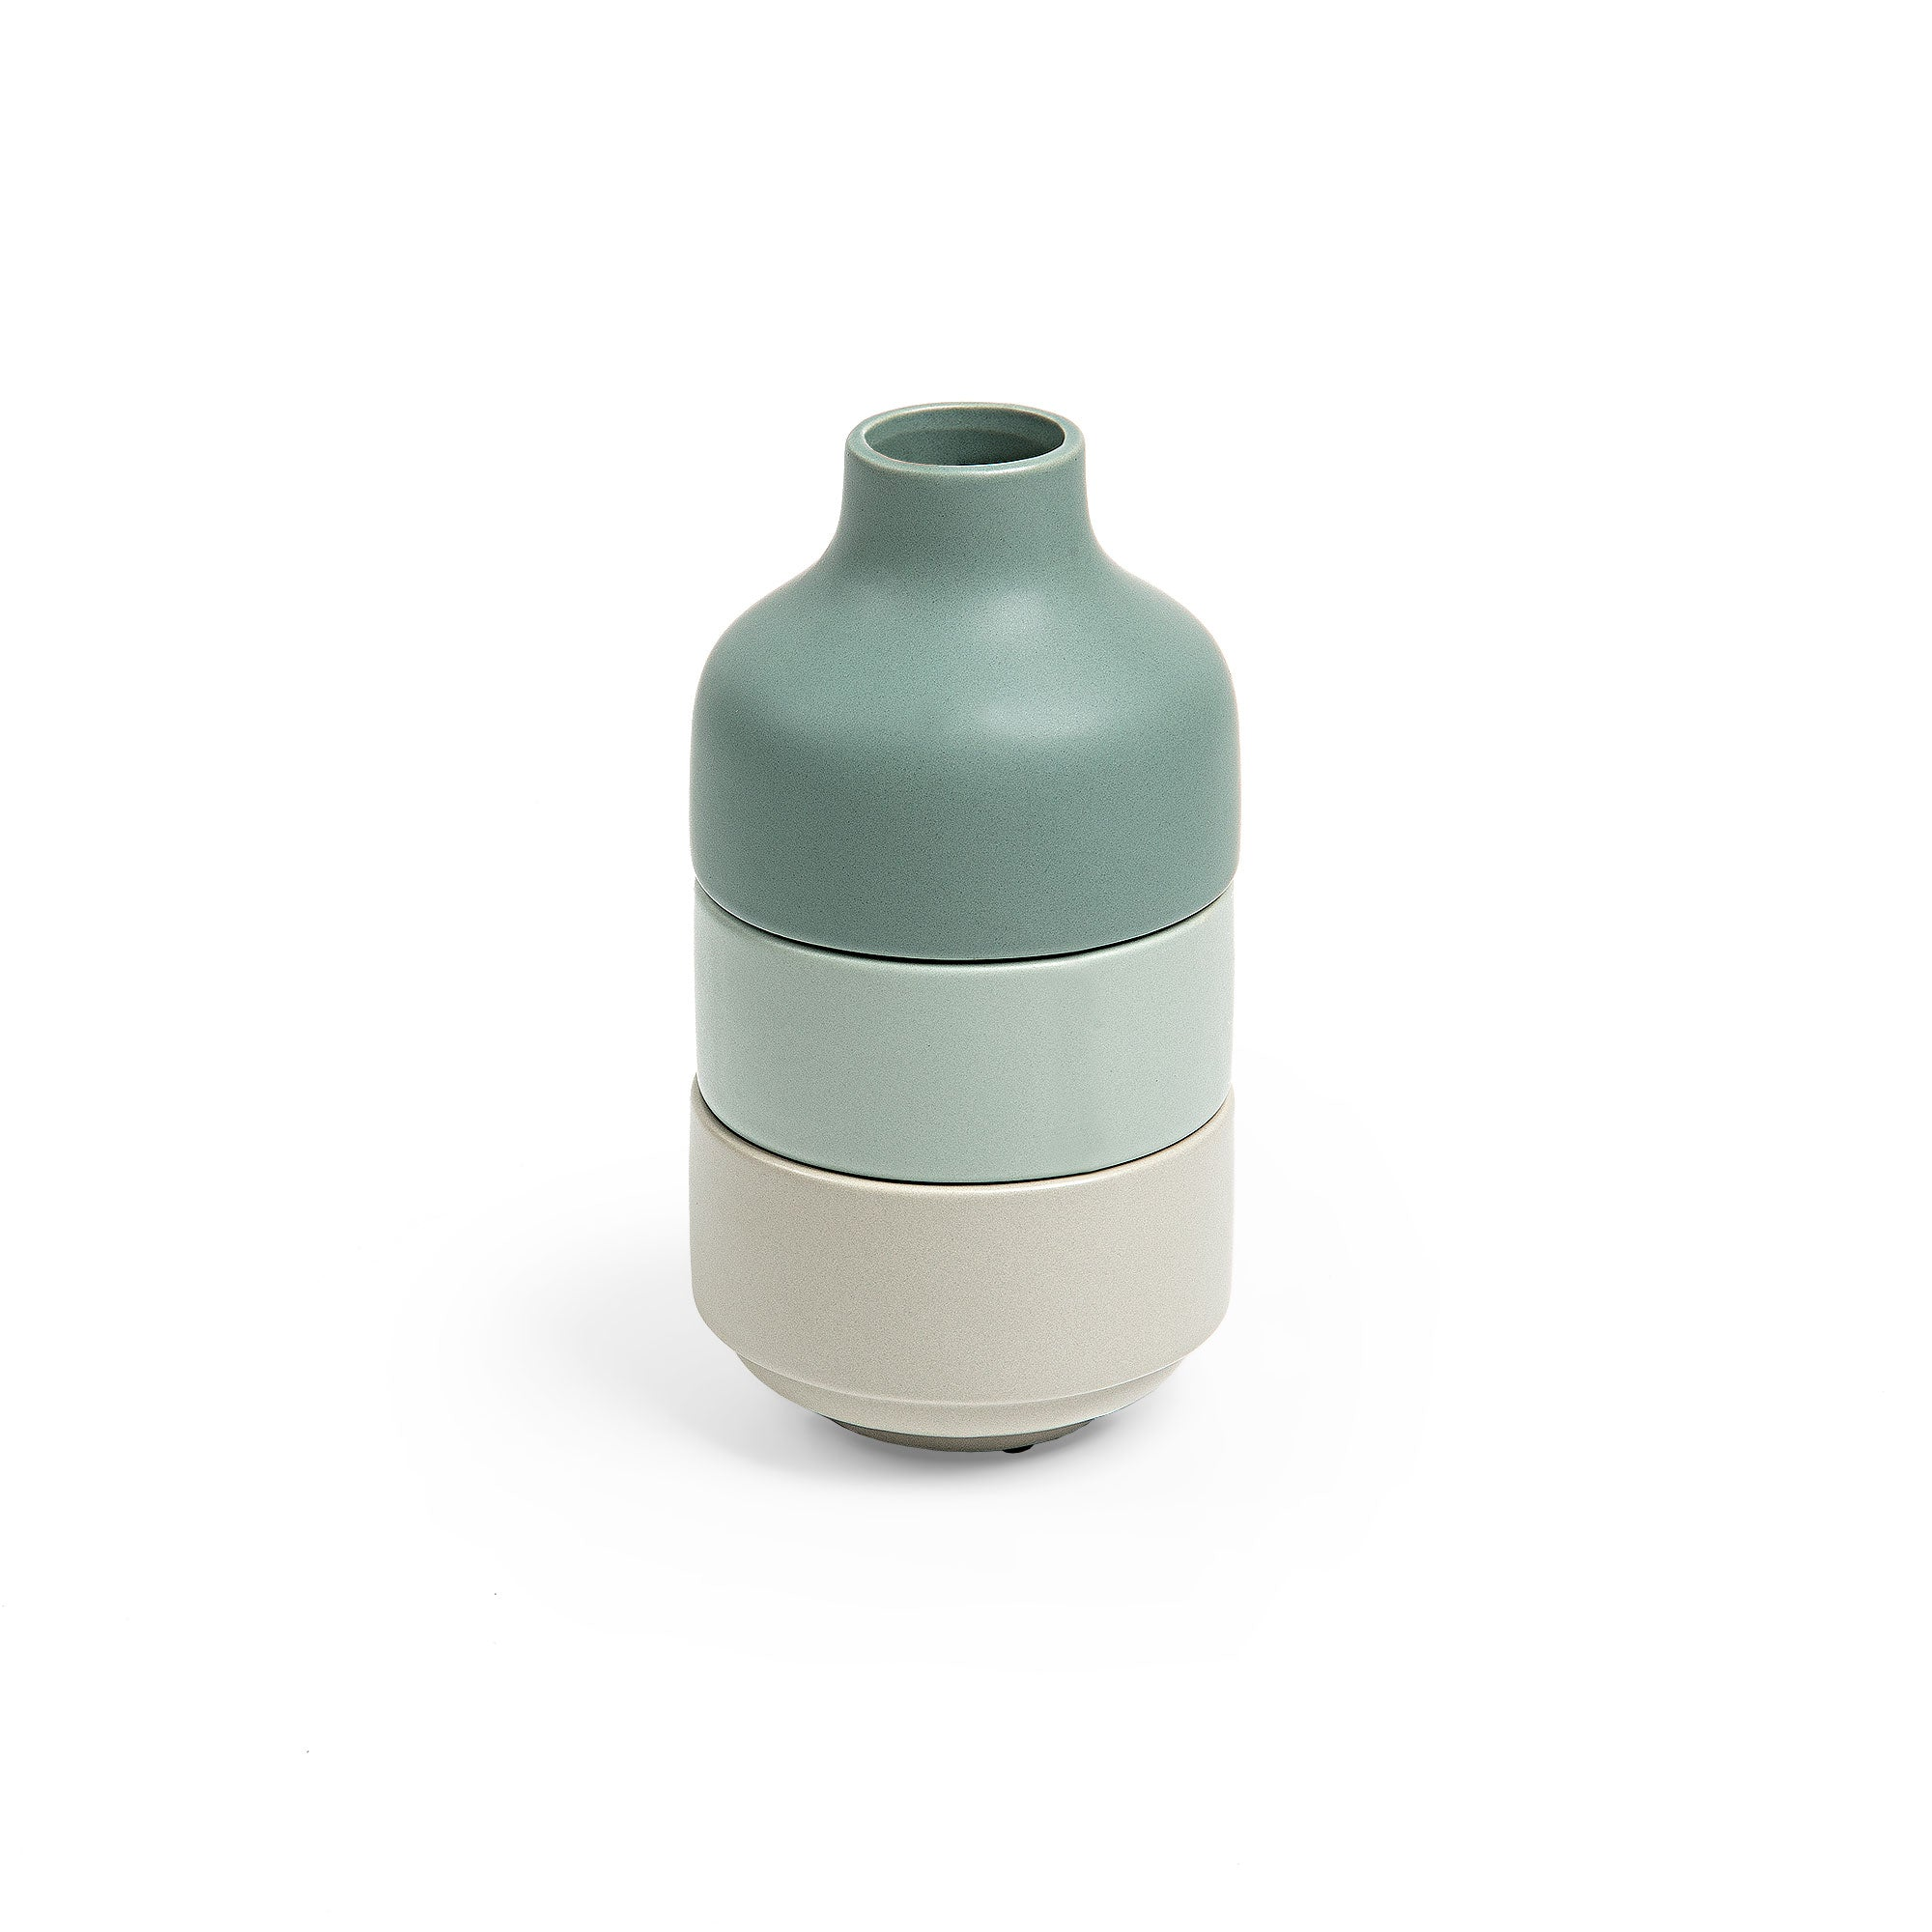 Taylor Vase - Stackable Vase with Bowls with Green, Beige & Grey Finish, Vase - Home-Buy Interiors